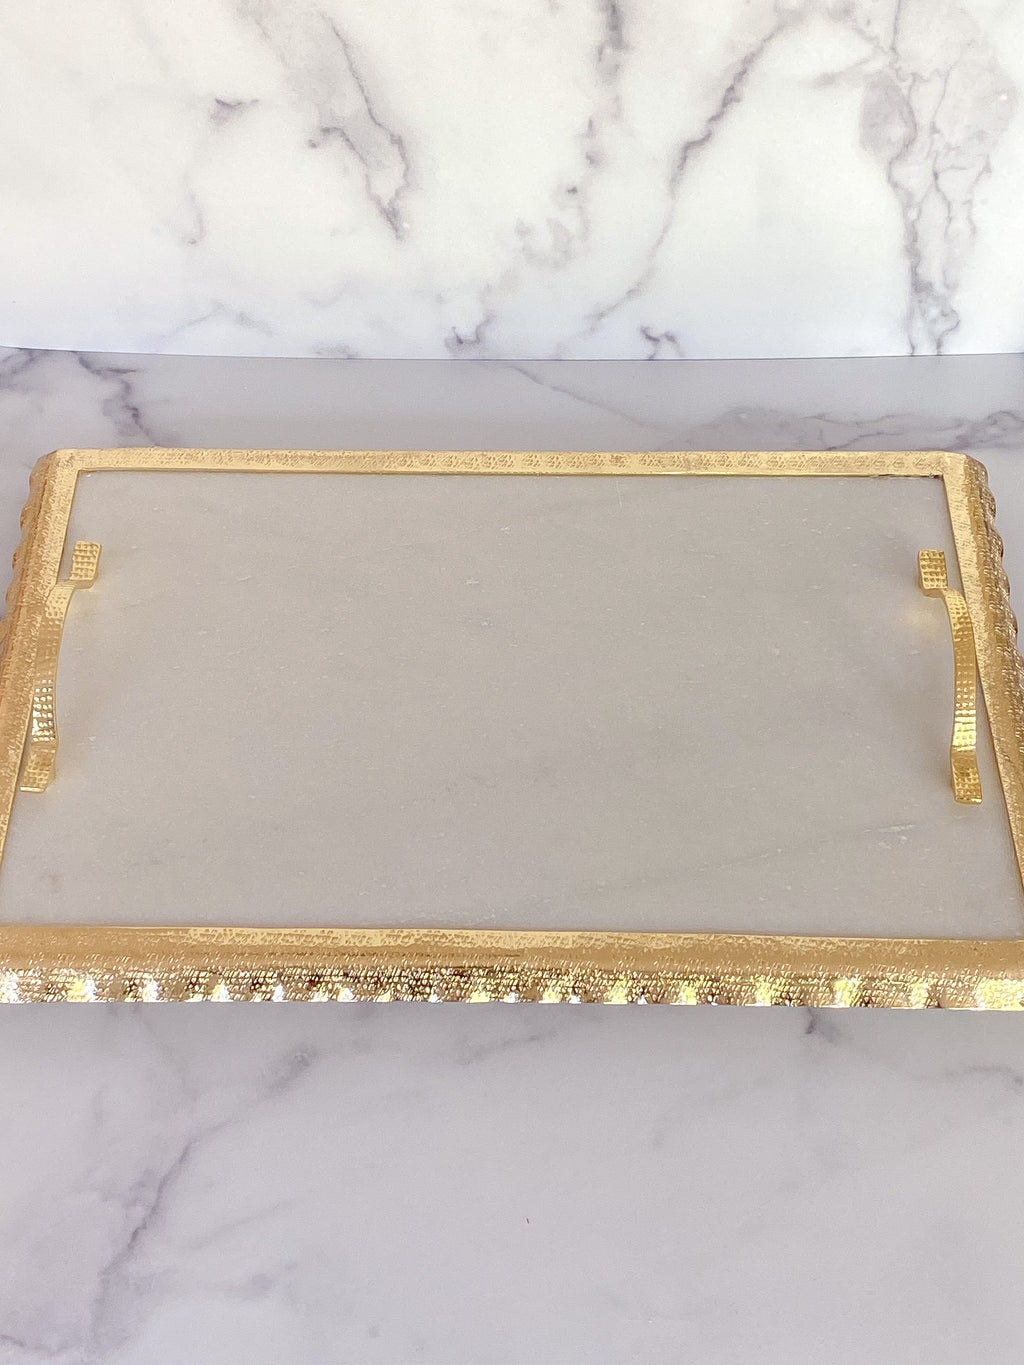 Marble Tray with Gold Handles and Border-Inspire Me! Home Decor